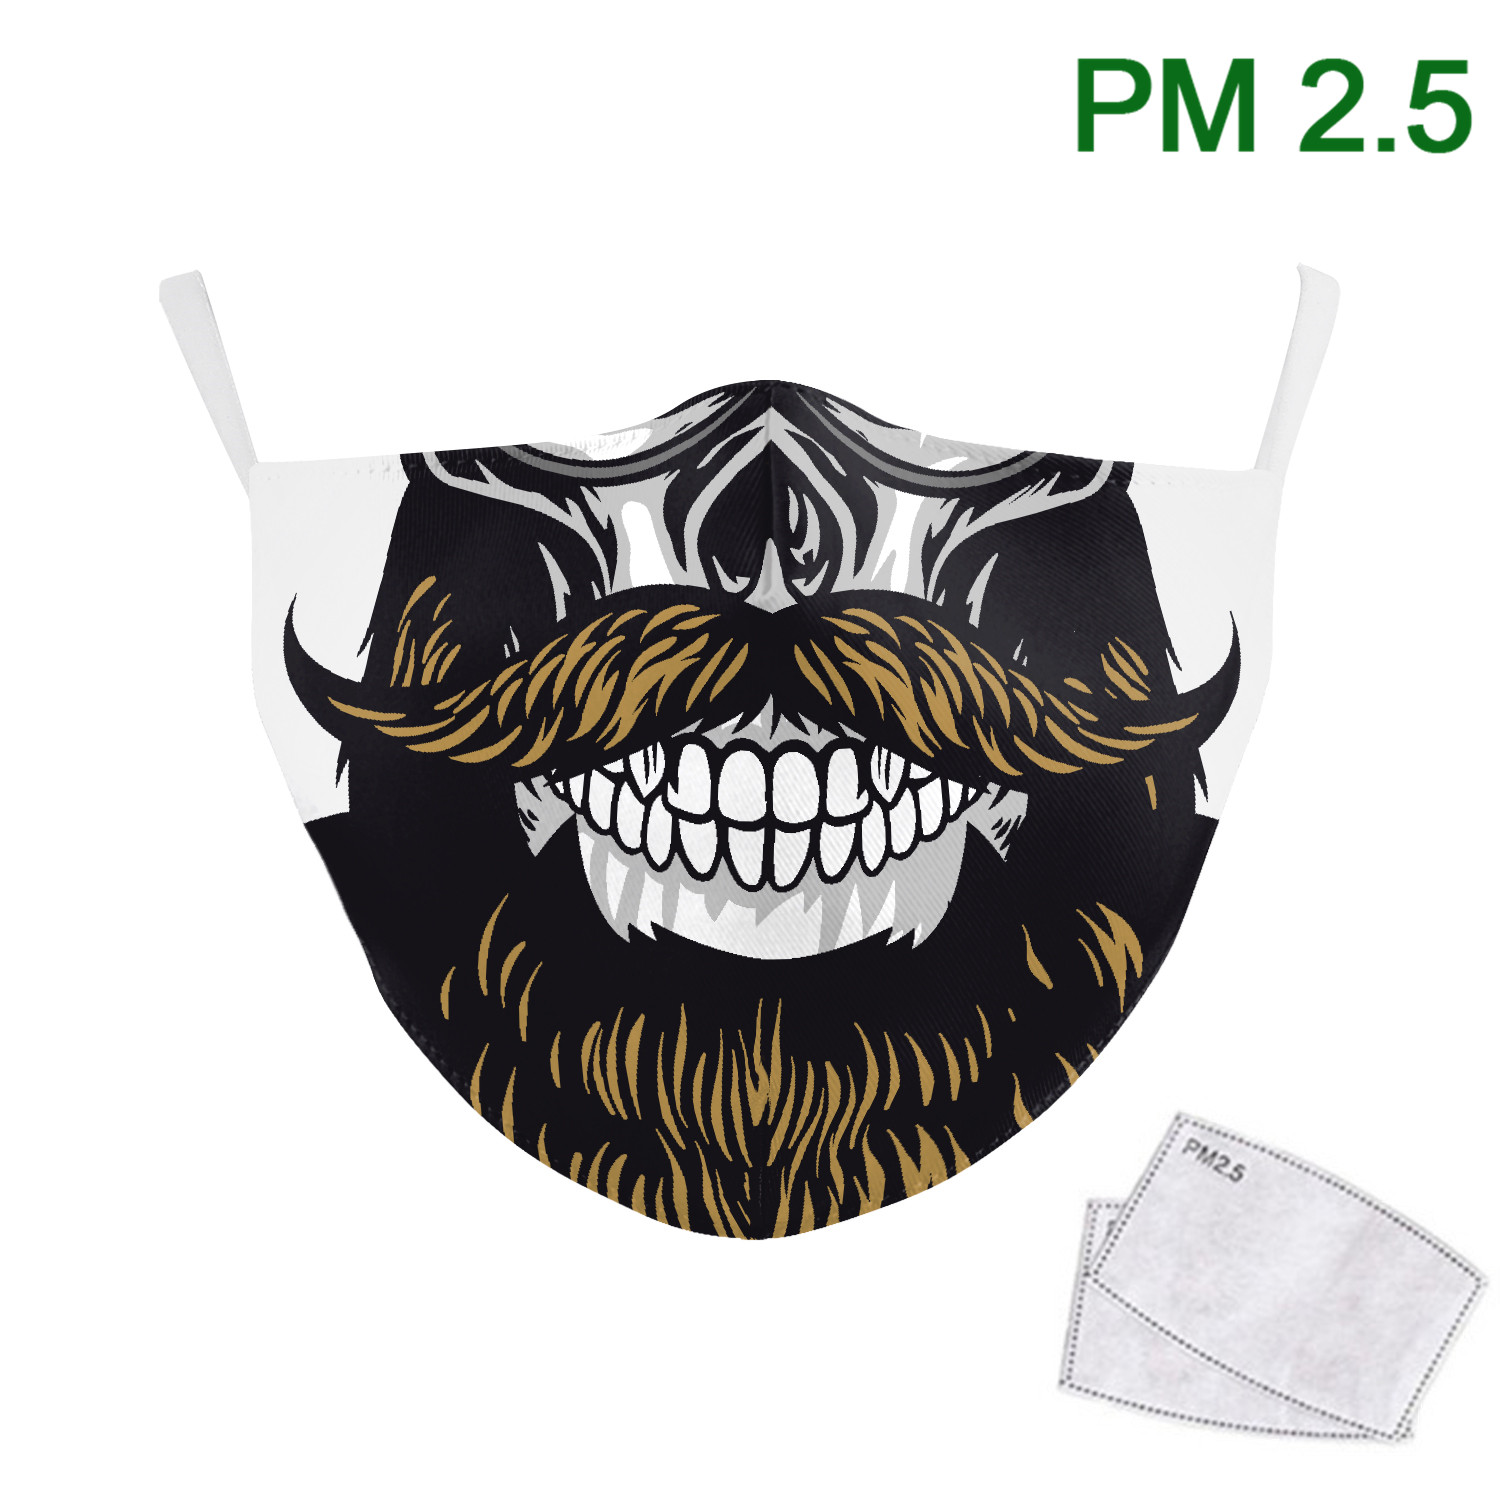 Classic Funny Mouth Moustache Print Face Mask Adult Washable Masks Fabric Adult Outdoor Mouth Cover PM2.5 Protective Dust Masks